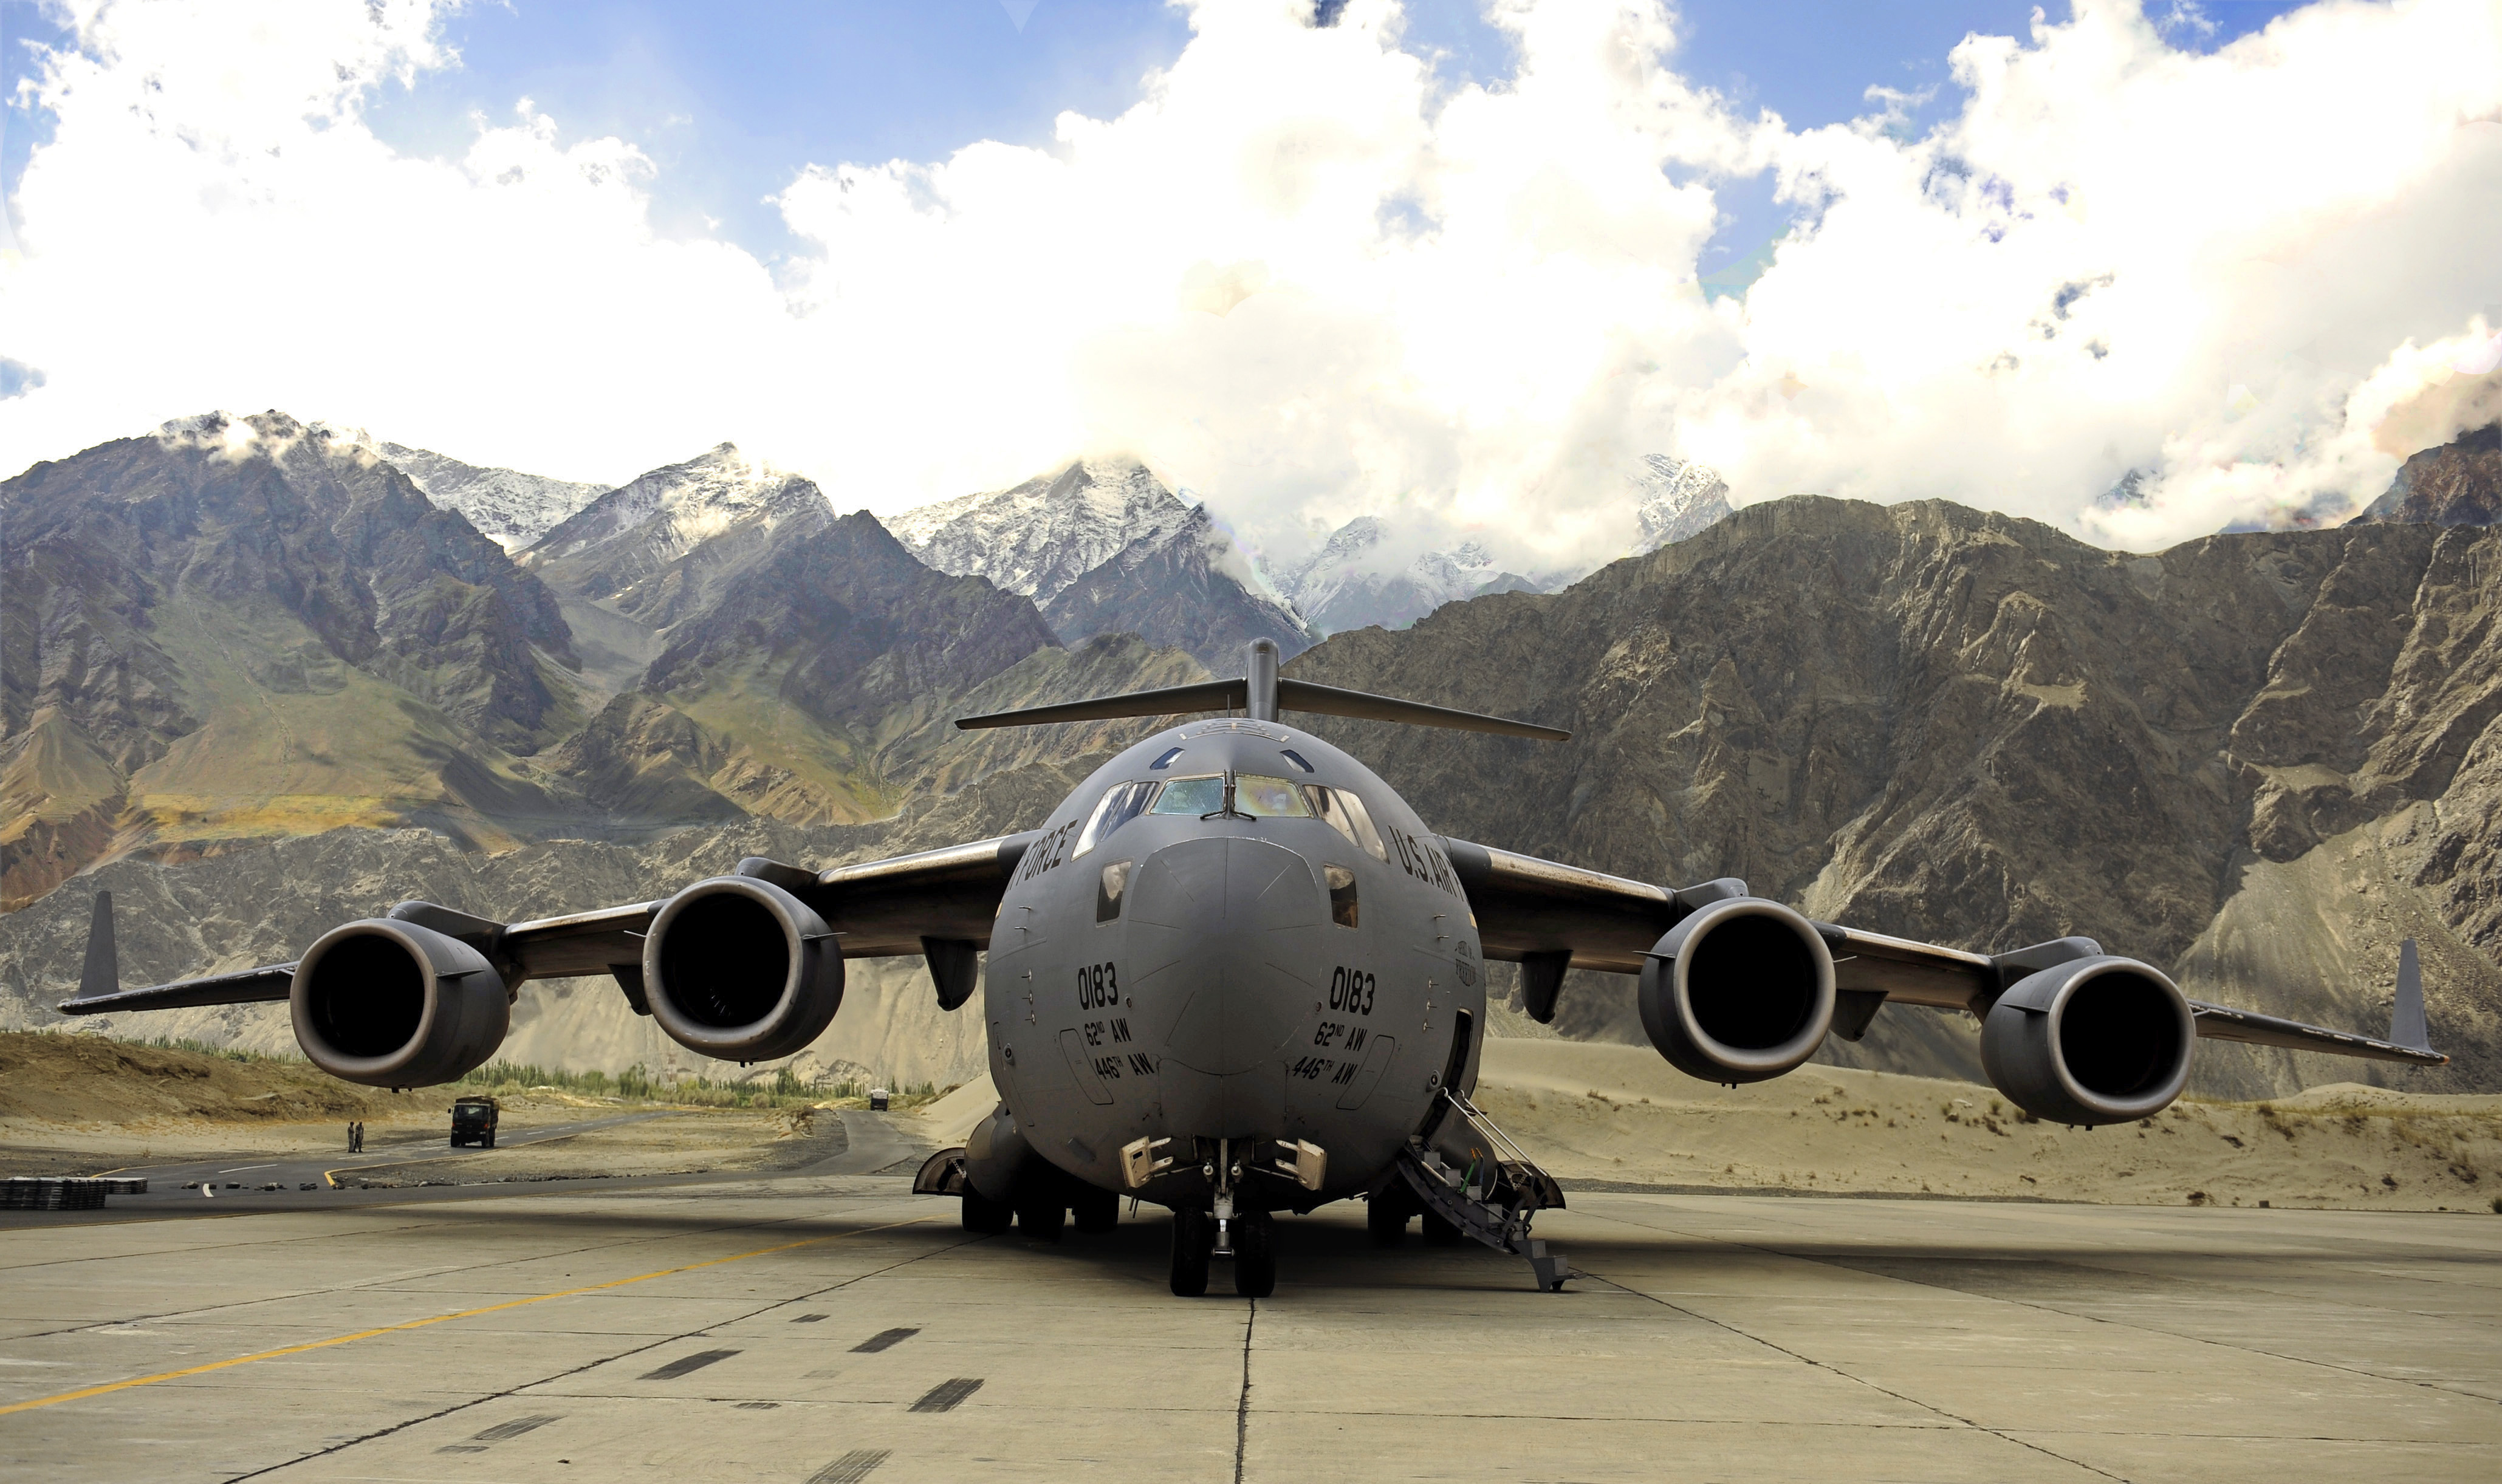 A C-17 Globemaster III aircraft assigned to the 816th Expeditionary Airlift Squadron waits on the flight line at Skardu Airfield, Pakistan, Sept. 24, 2010, before crews unloads 16 pallets stacked with bags of flour in support of flood relief efforts [4118 x 2443]